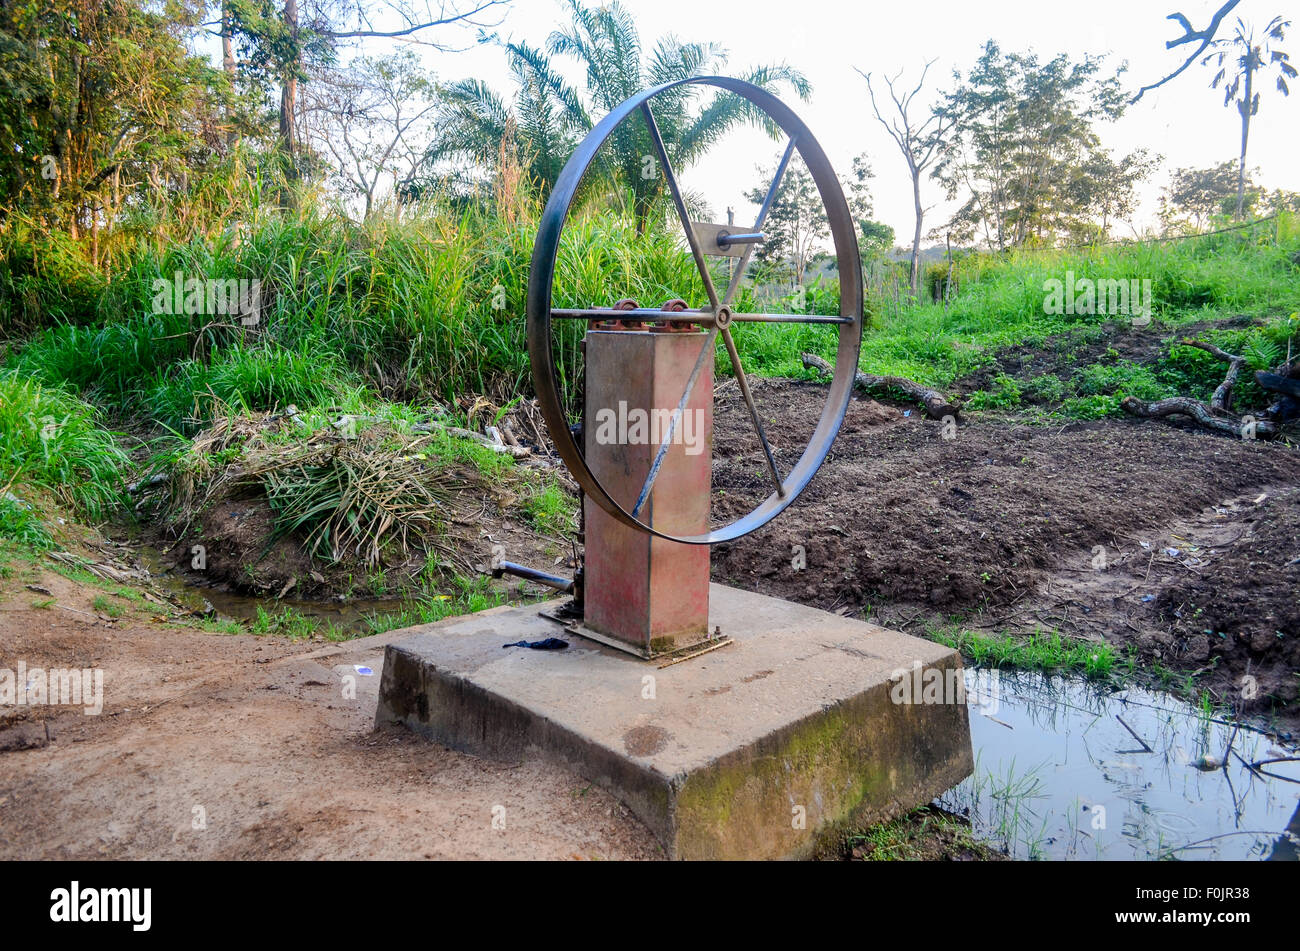 Wheel pump for drinking water in rural Cameroon - Stock Image